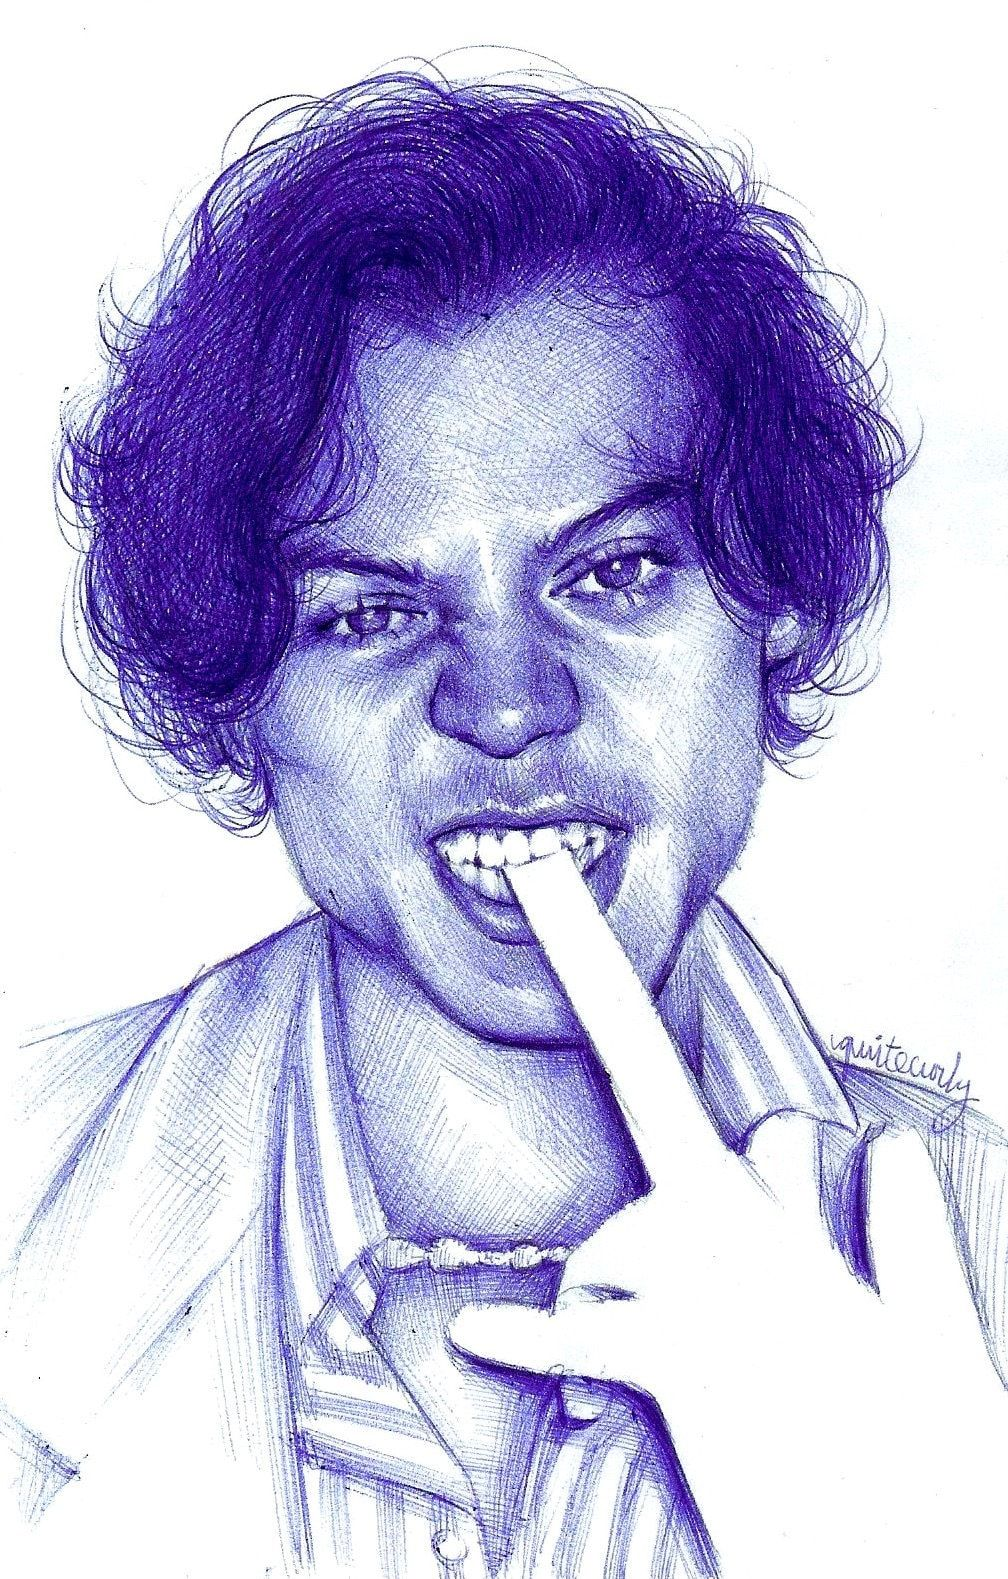 4x6 inch photo print of my original pen drawing of harry styles for the golden music video.